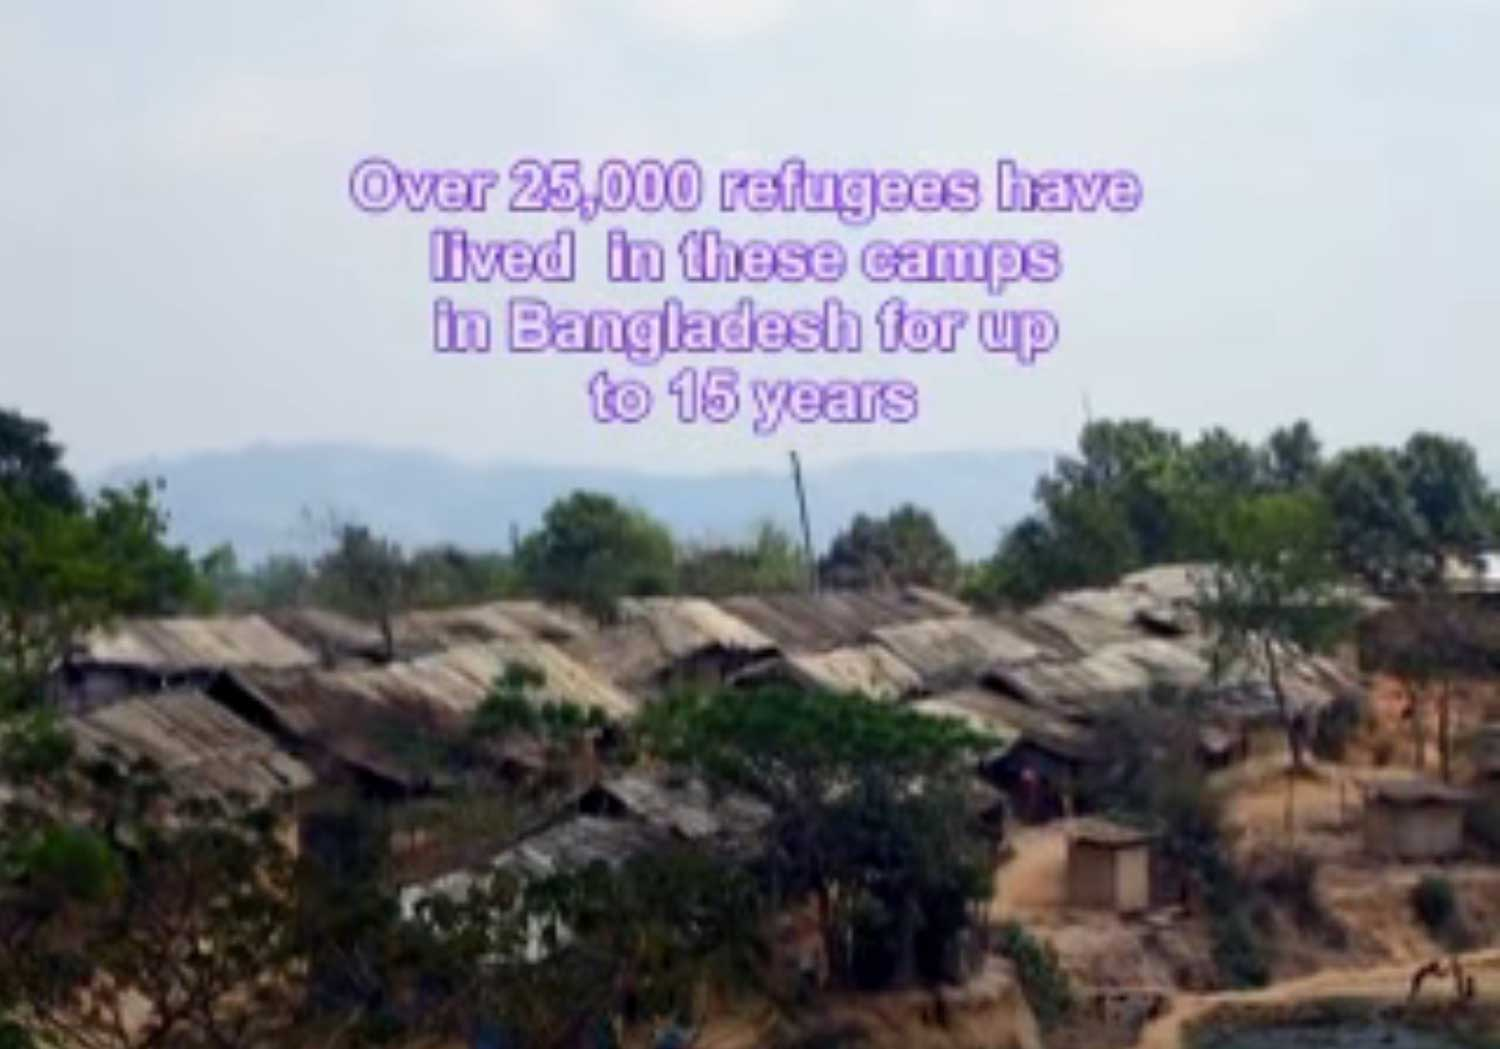 Refugee camp with words over 25,000 refugees have fled to these camps in Bangladesh for up to 15 years